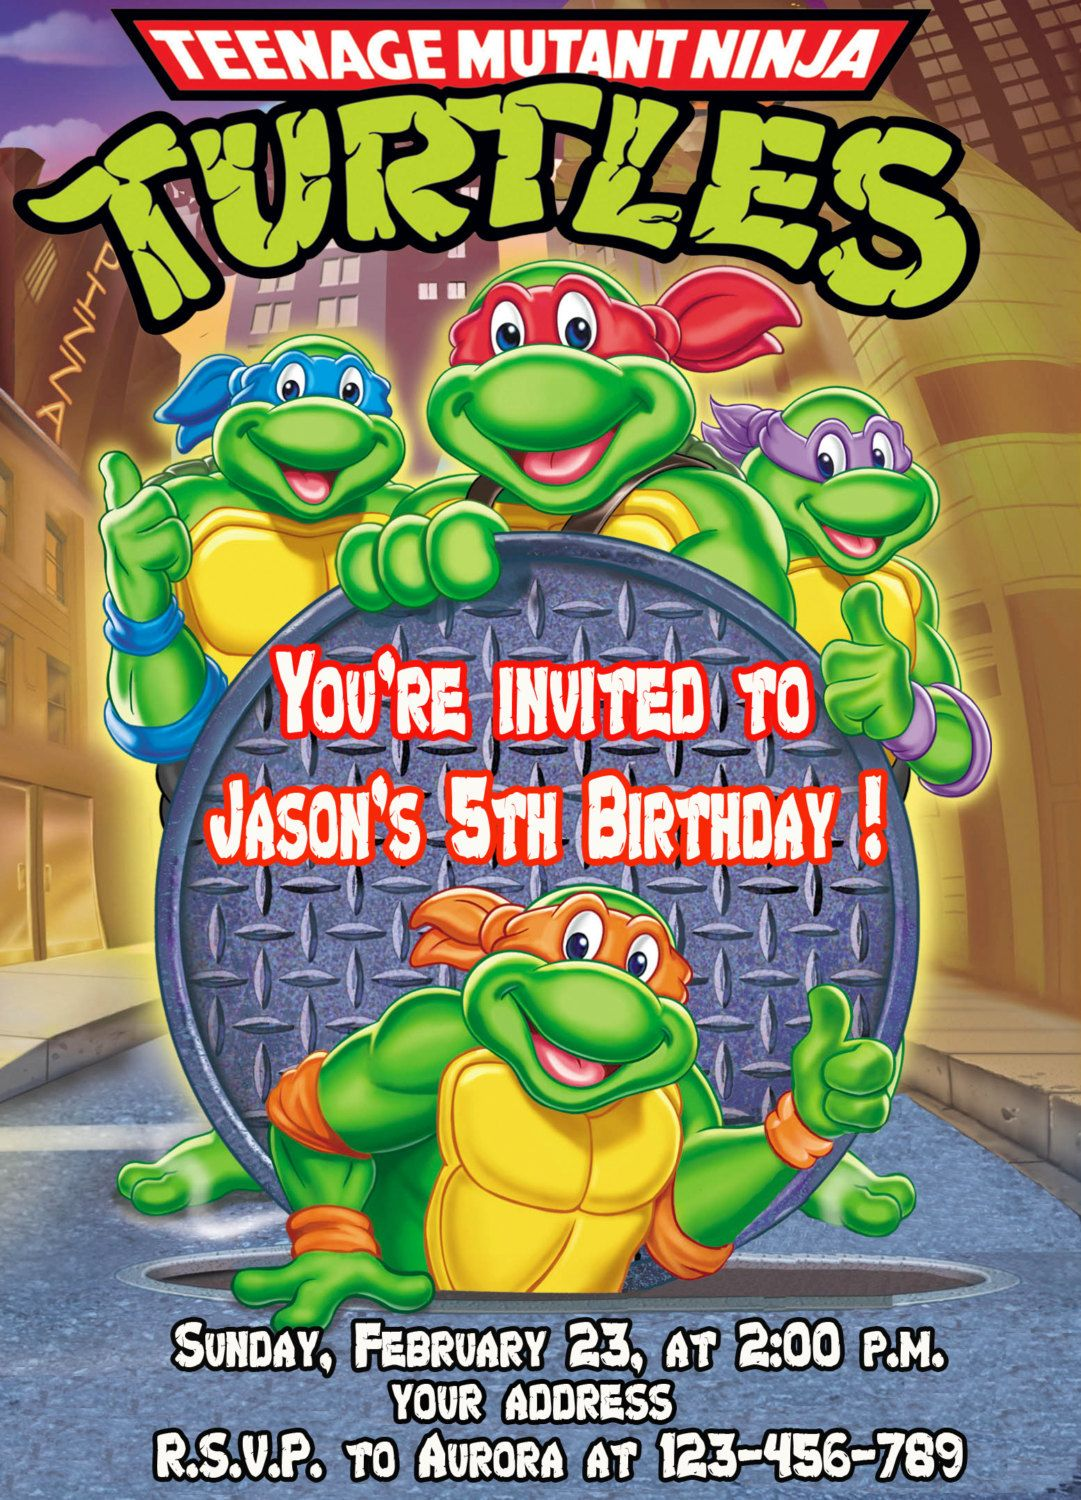 photograph about Ninja Turtles Birthday Invitations Printable named Teenage Mutant Ninja Turtles birthday invitation Printable